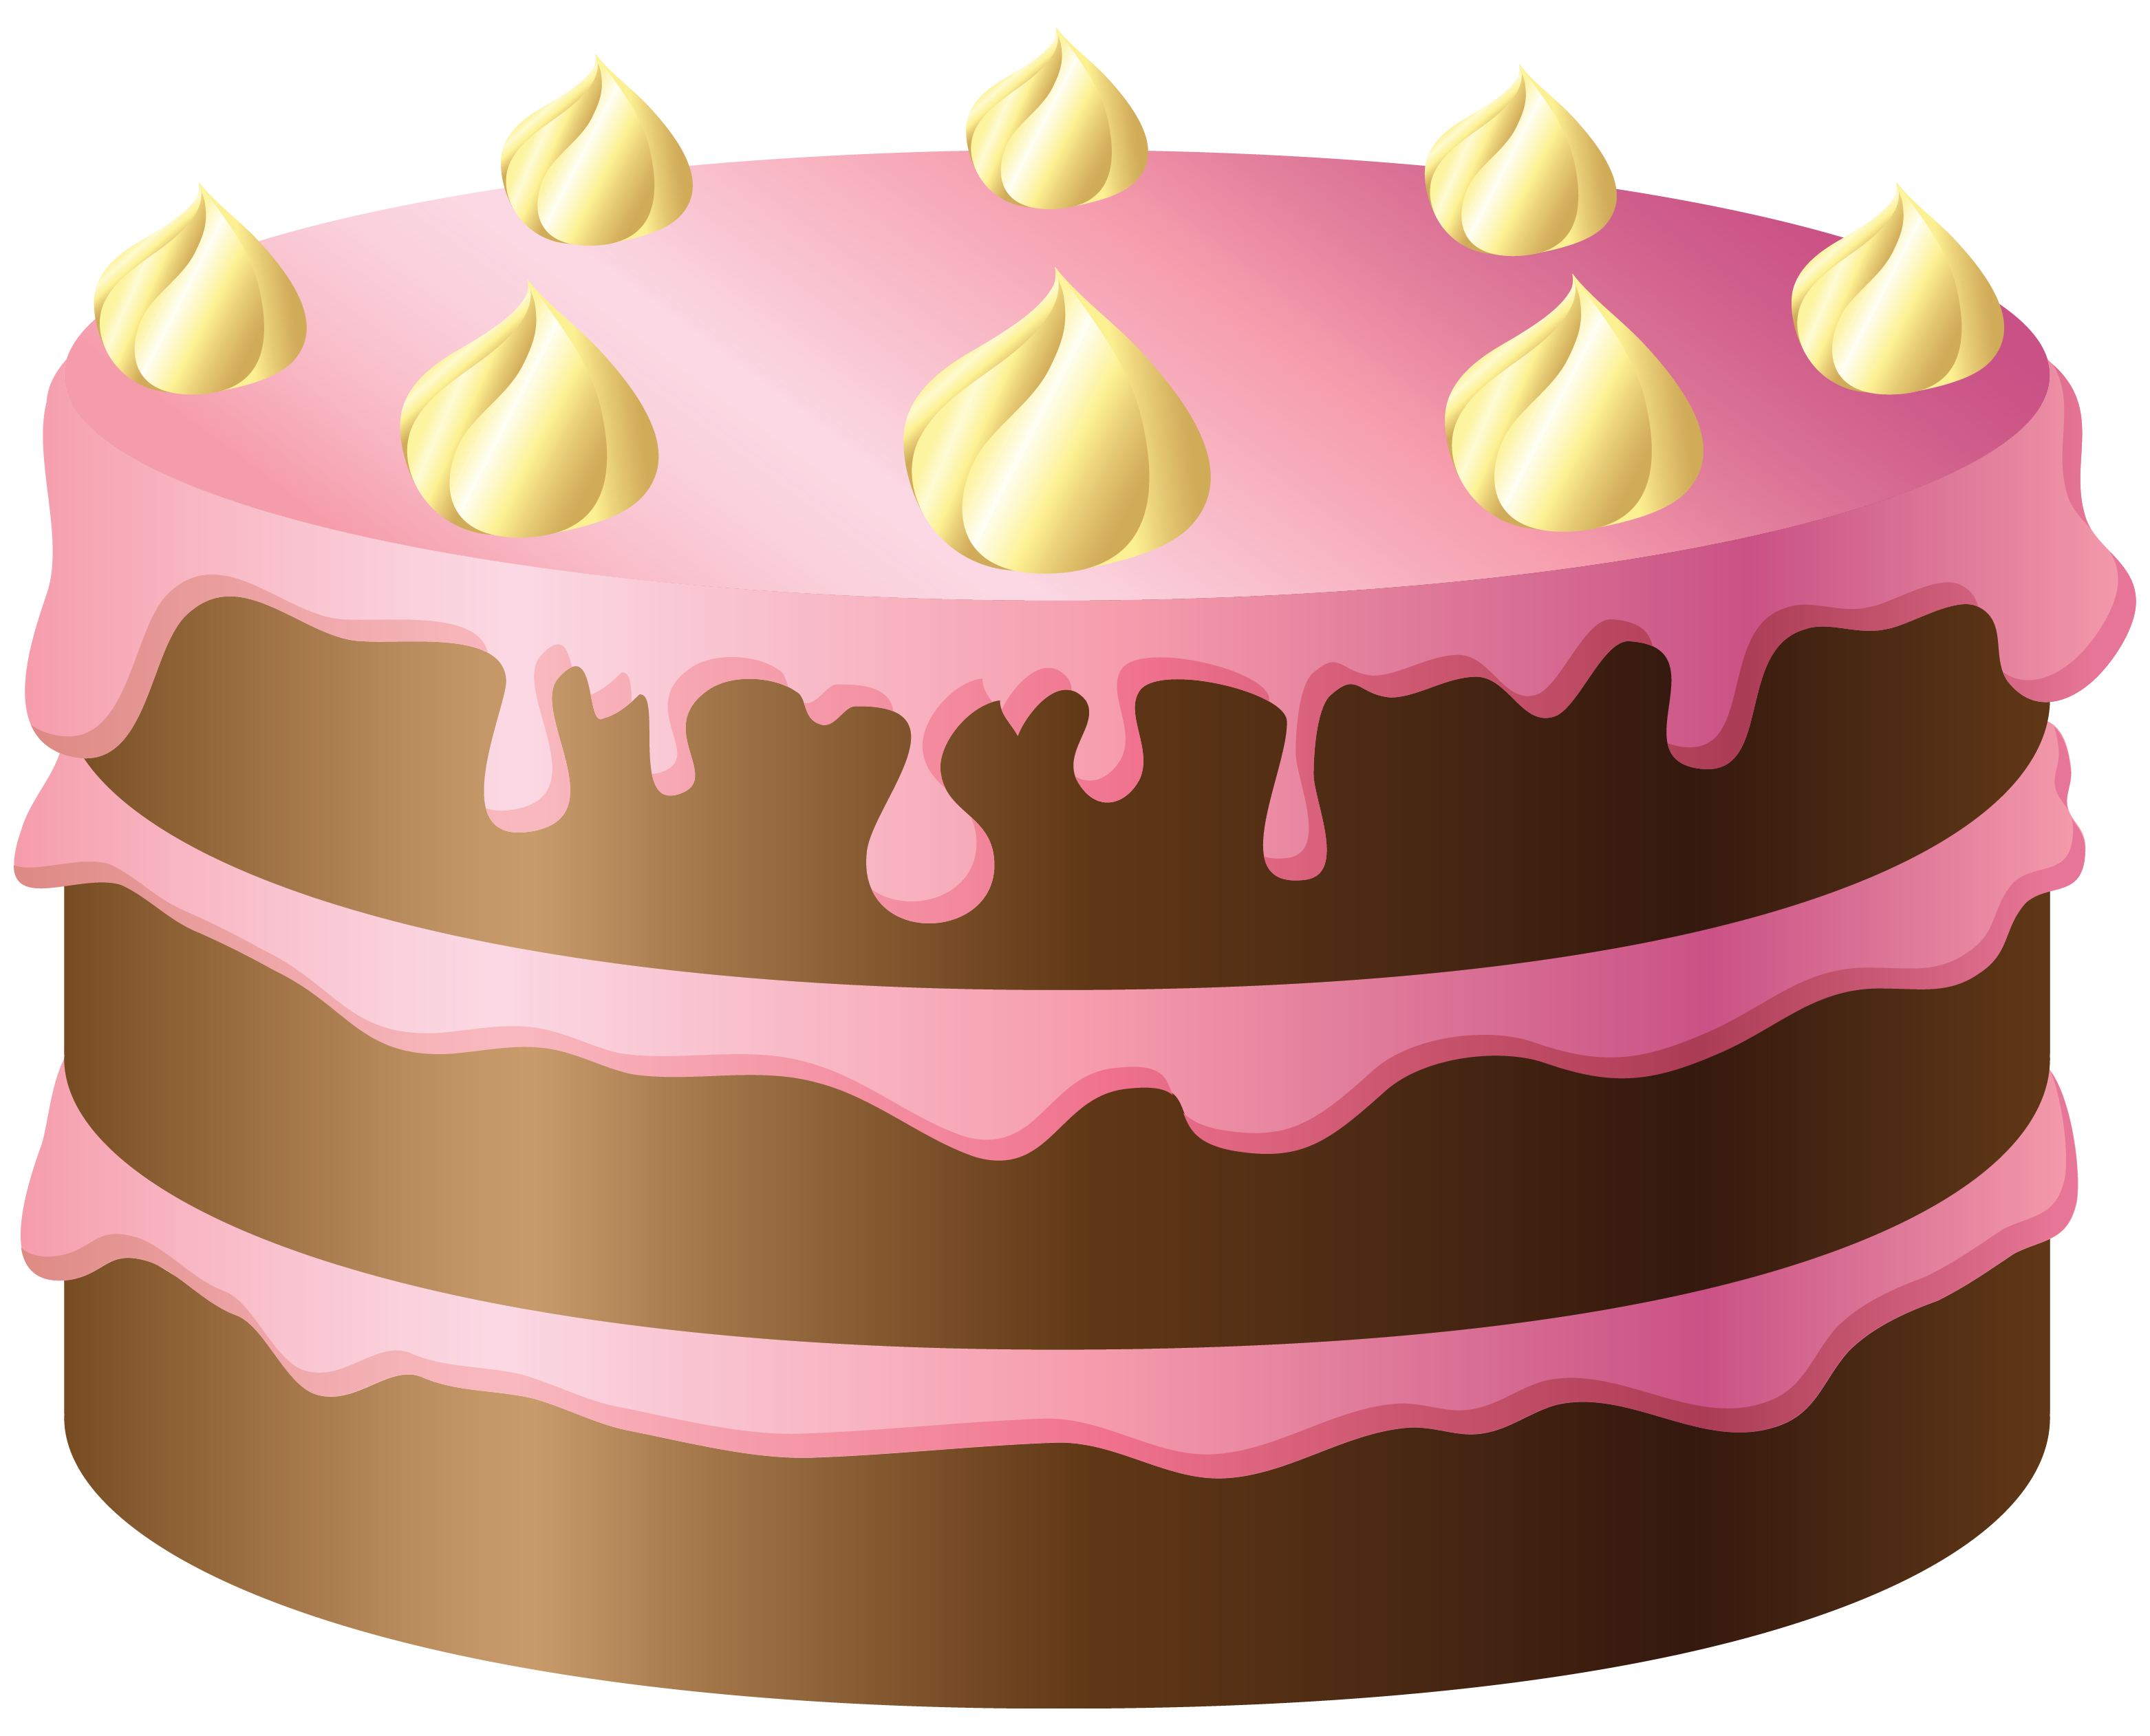 Chalk cake png. Chocolate with pink and